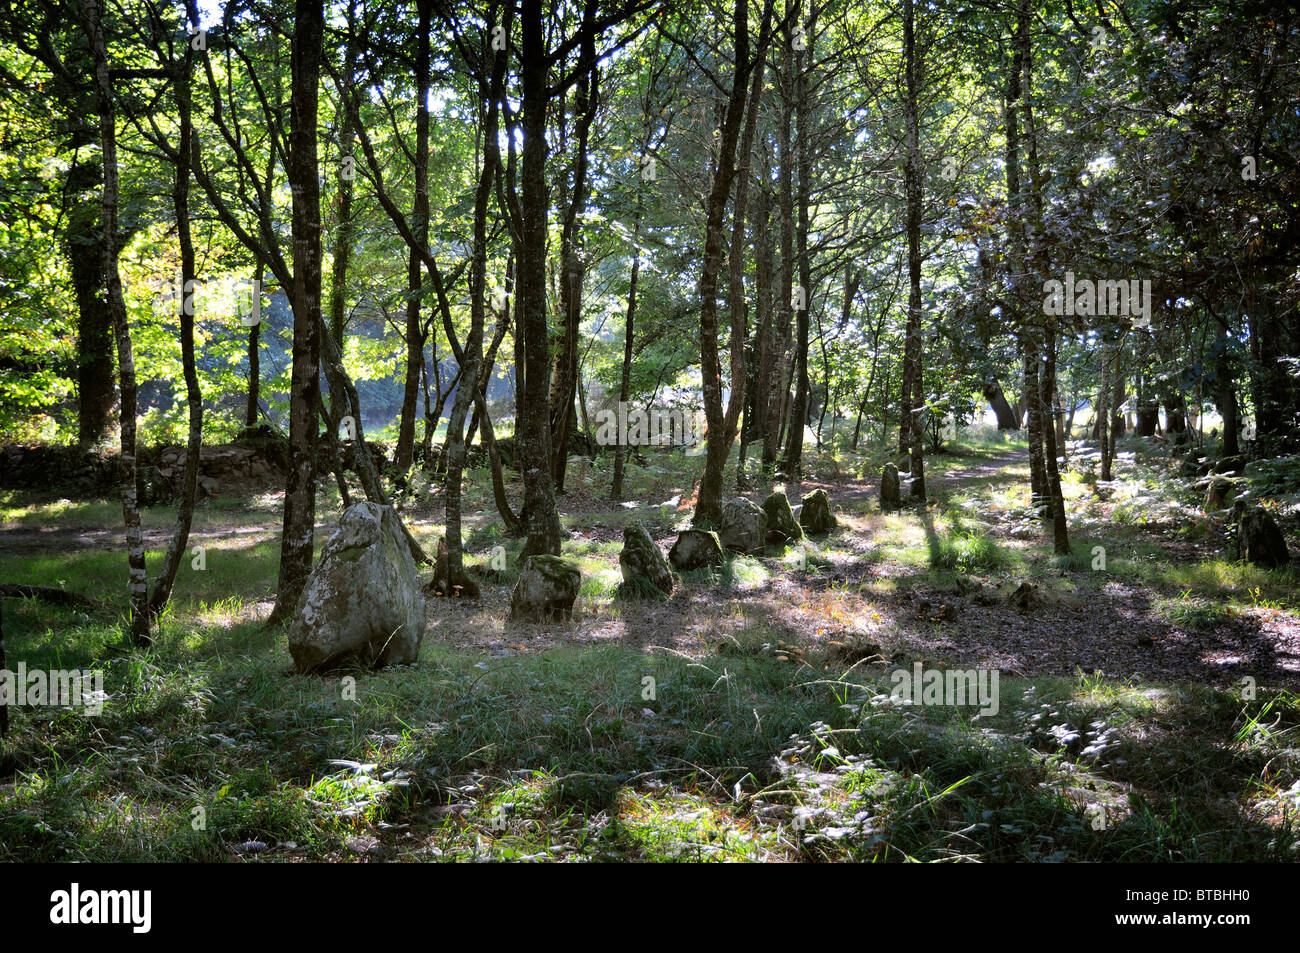 The petit-menac section of the alignment of standing stones at Carnac, Brittany, Frnace - Stock Image